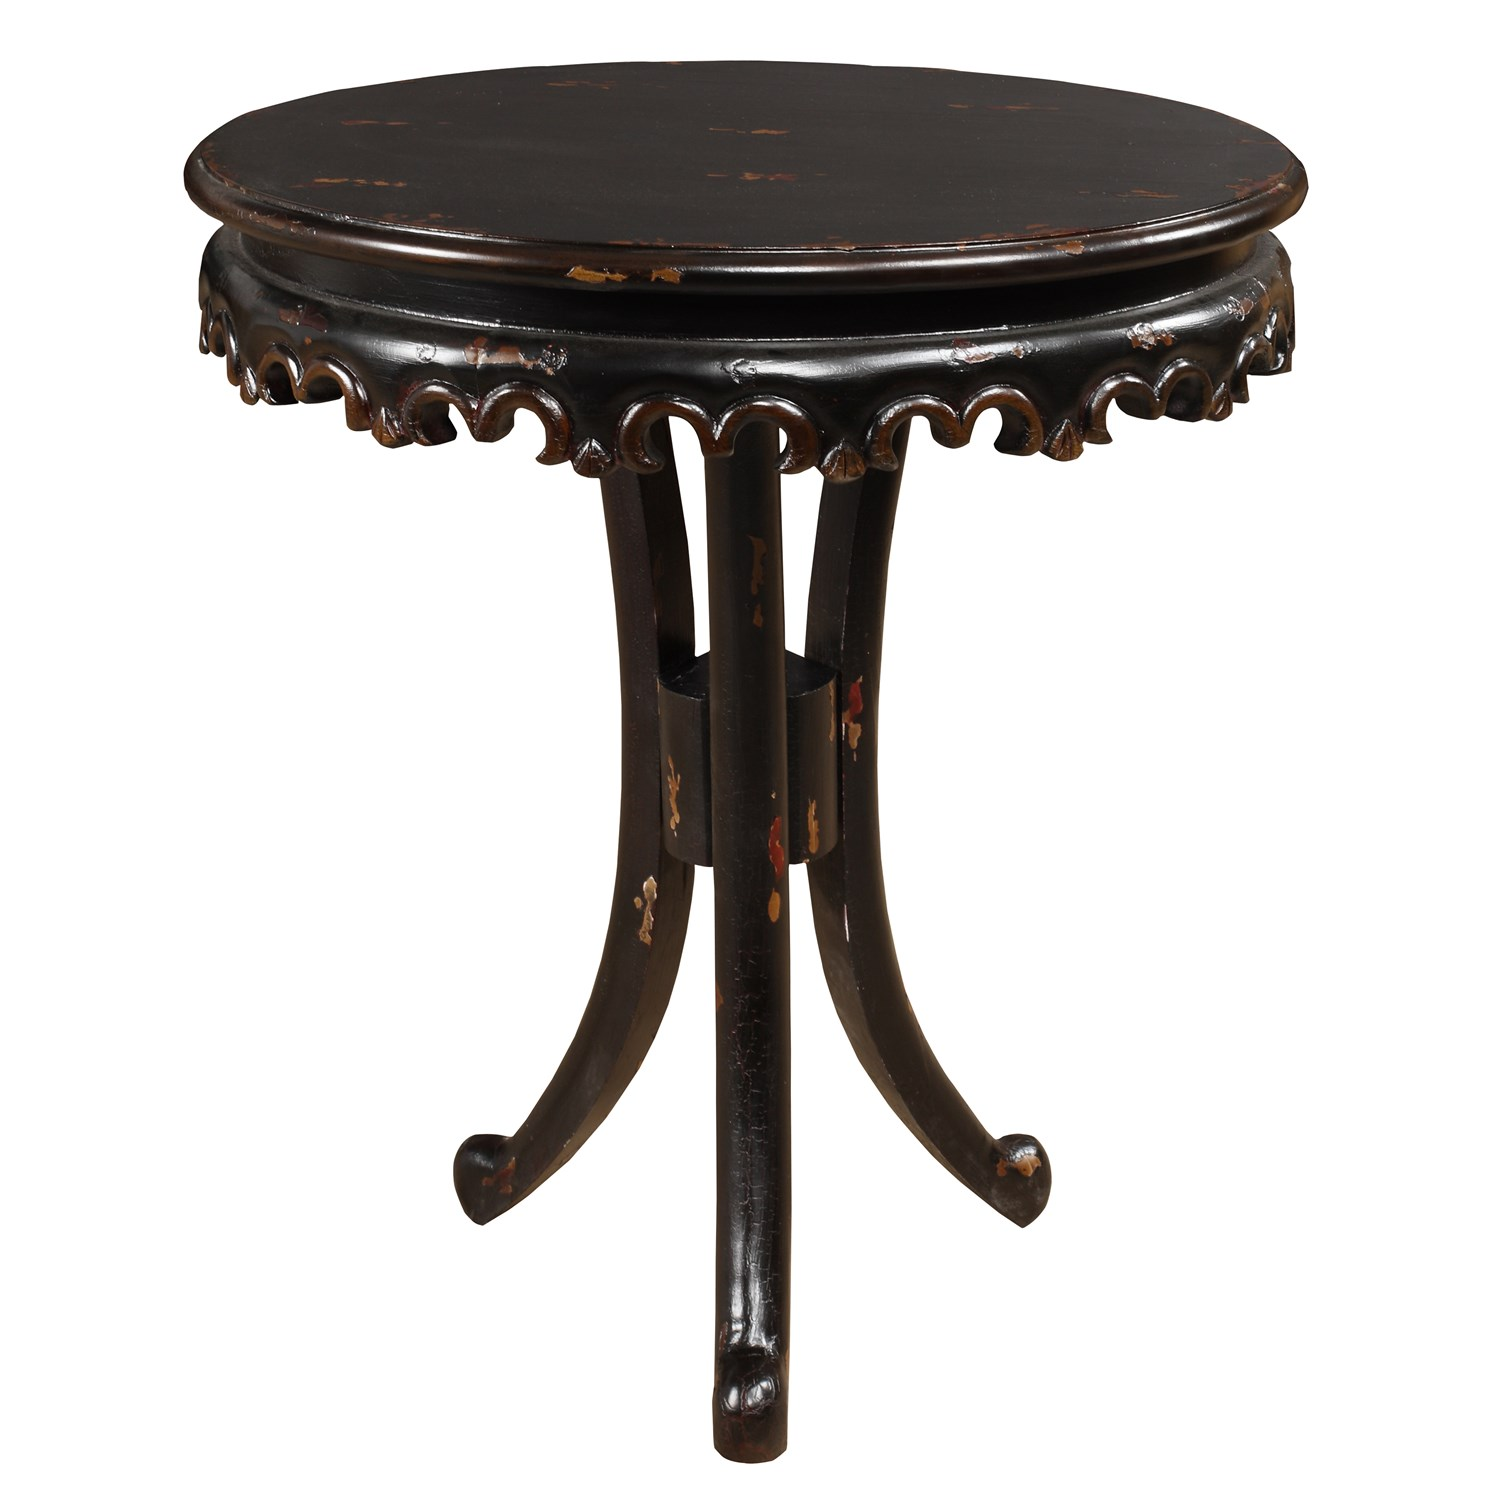 incredible round pedestal accent table with tables touch impressive nice for living room decor home ideas metal glynn black gloss sideboard pub bar height unfinished wood tall